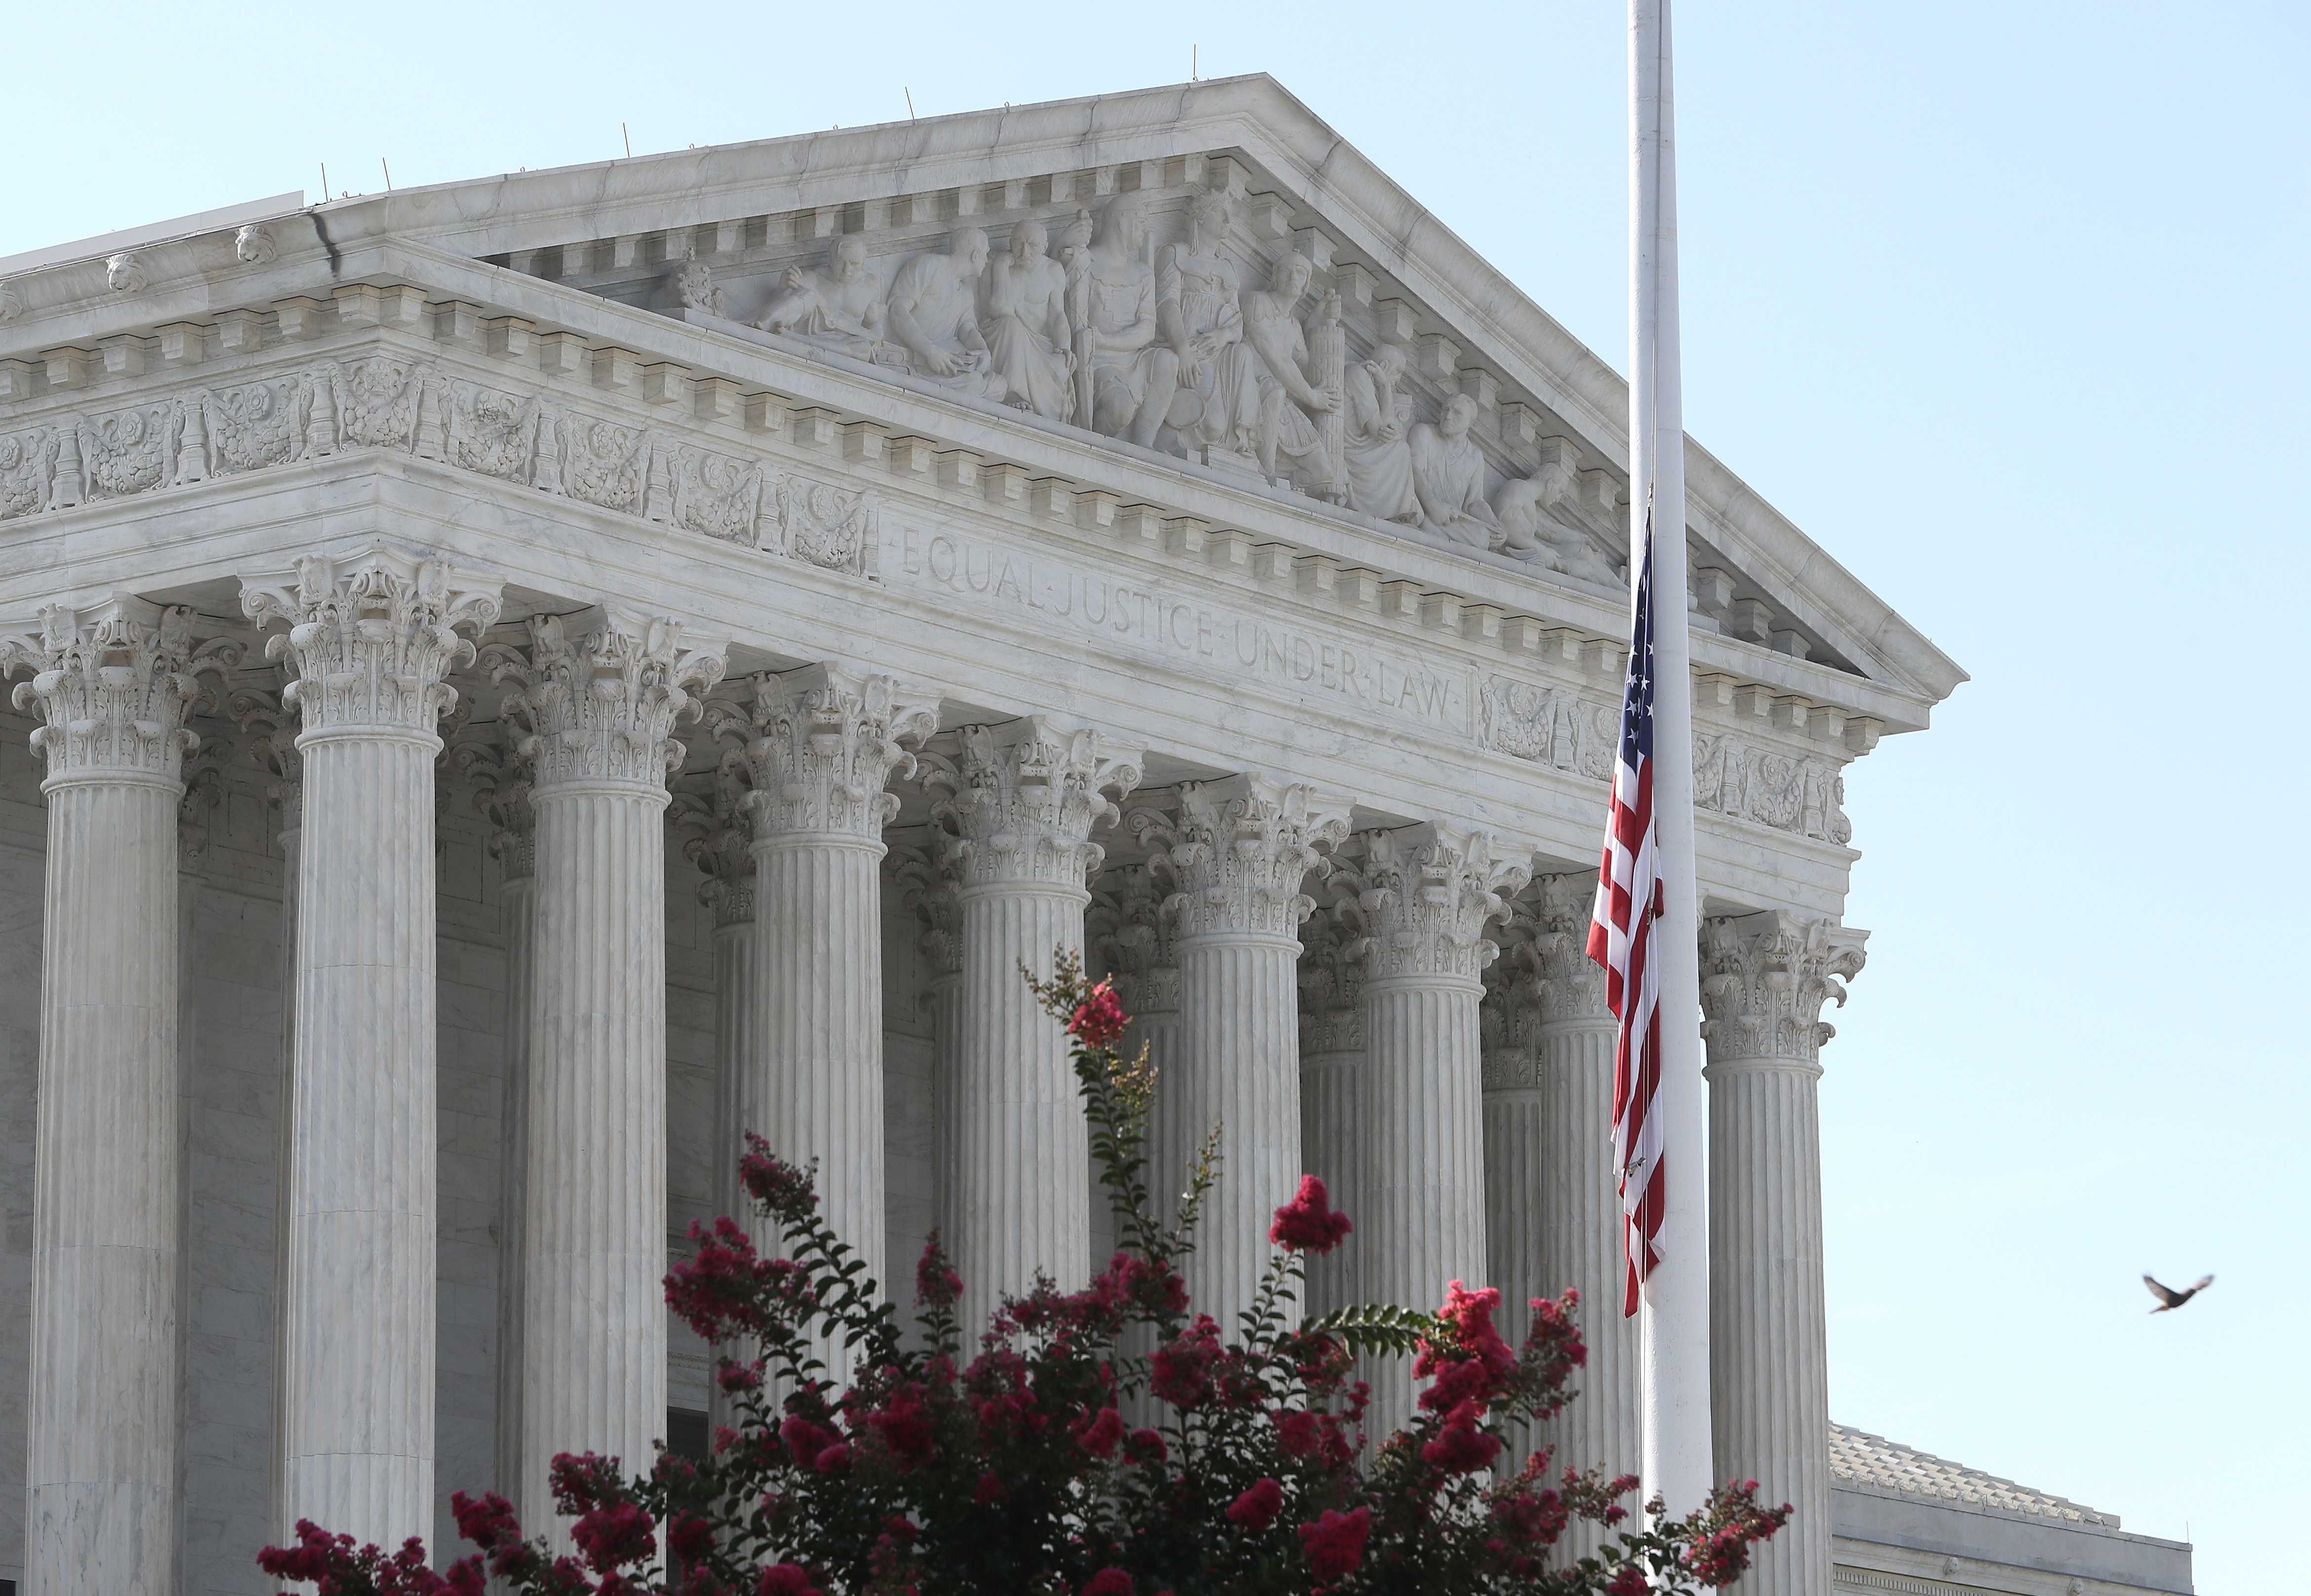 Flags at half-staff in front of the Supreme Court to honor Justice John Paul Stevens. (Mark Wilson/Getty Images)